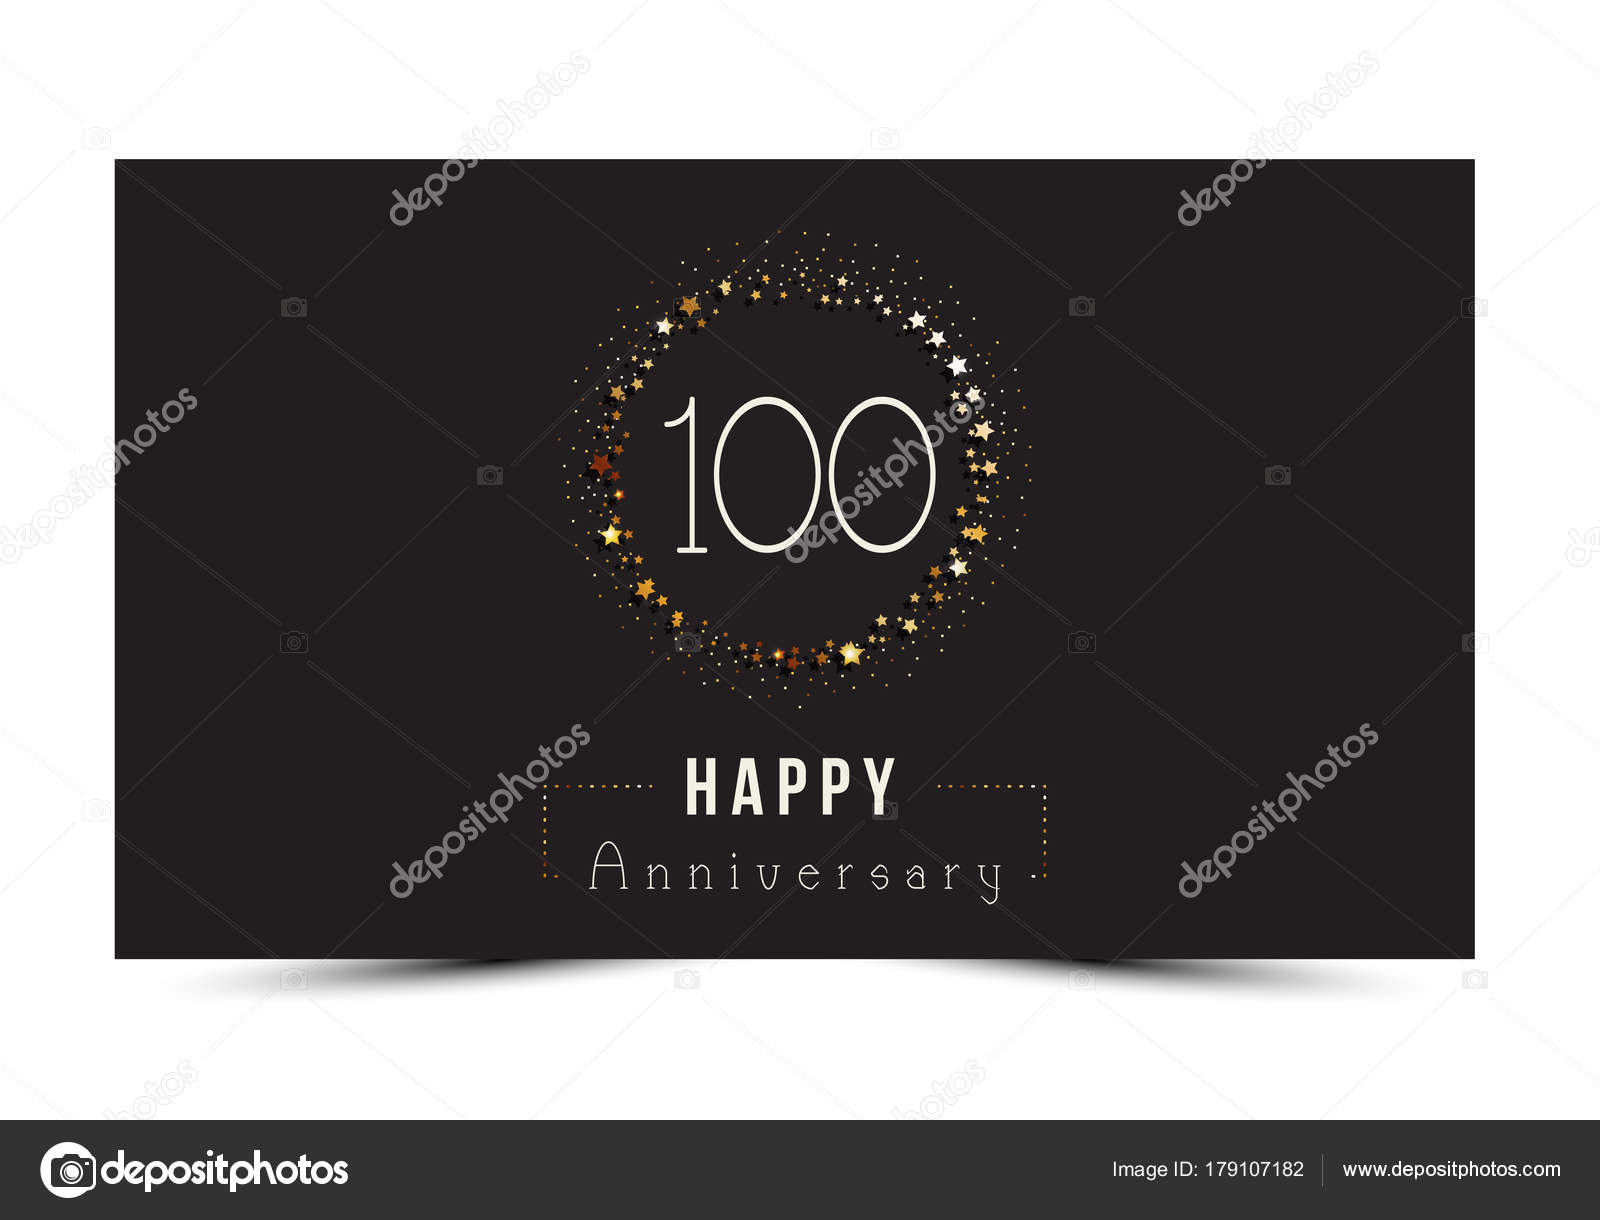 100 years happy anniversary card template with gold stars stock